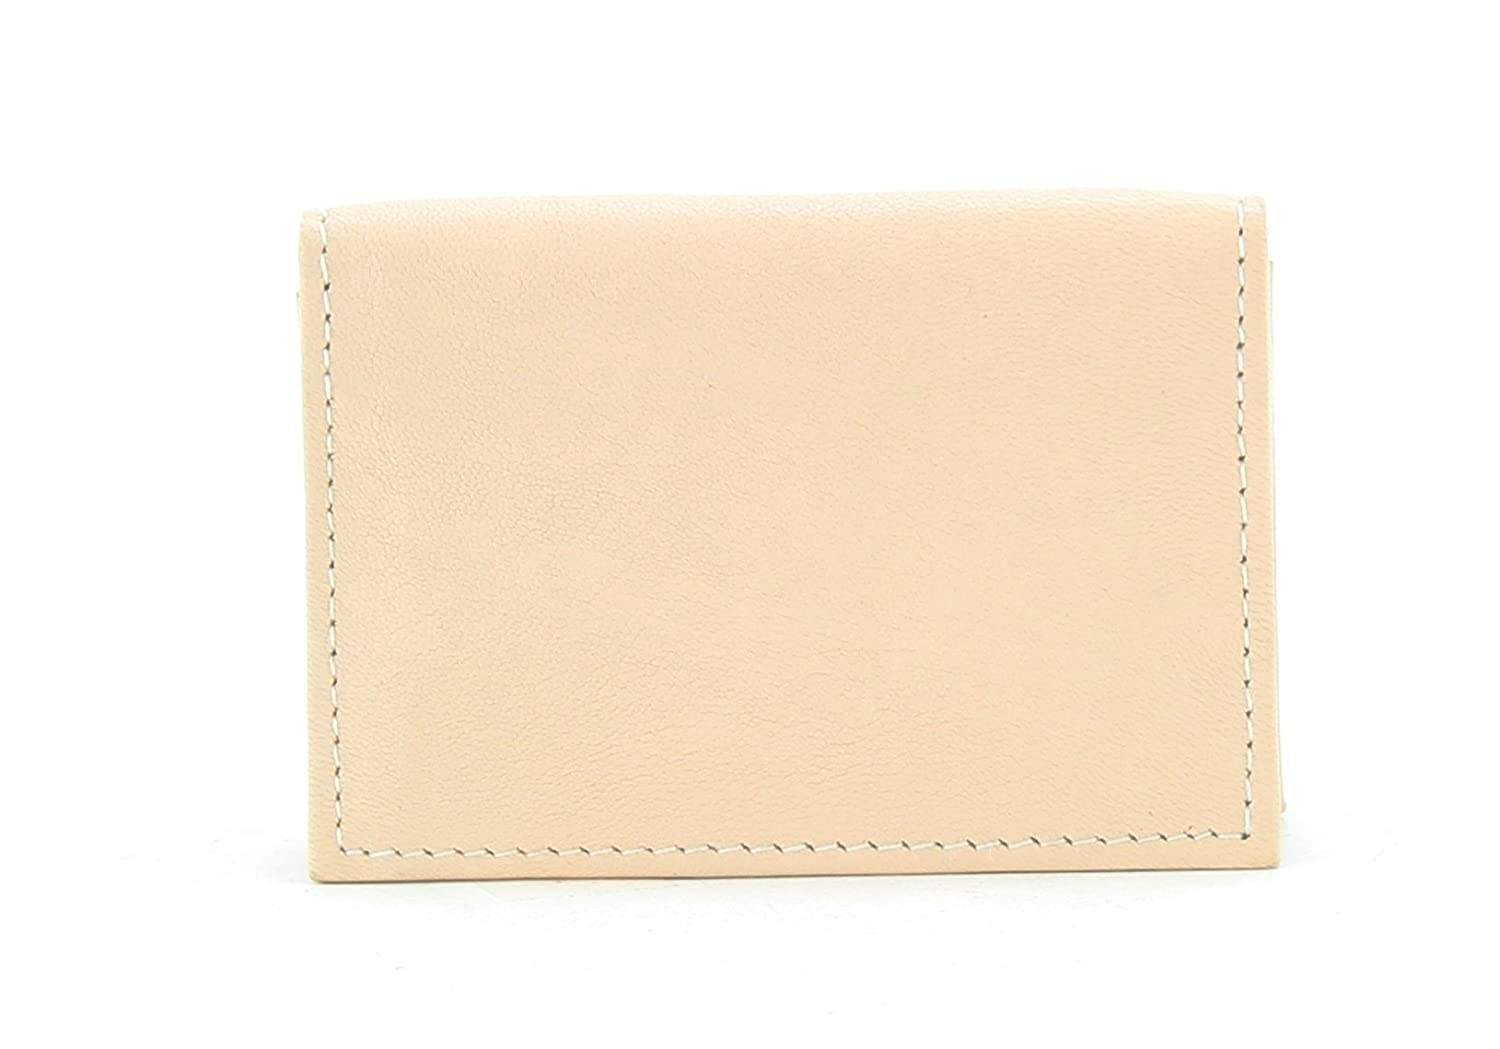 Small Travel Leather Gusseted Card Case Holder With Expandable Business Card Pocket